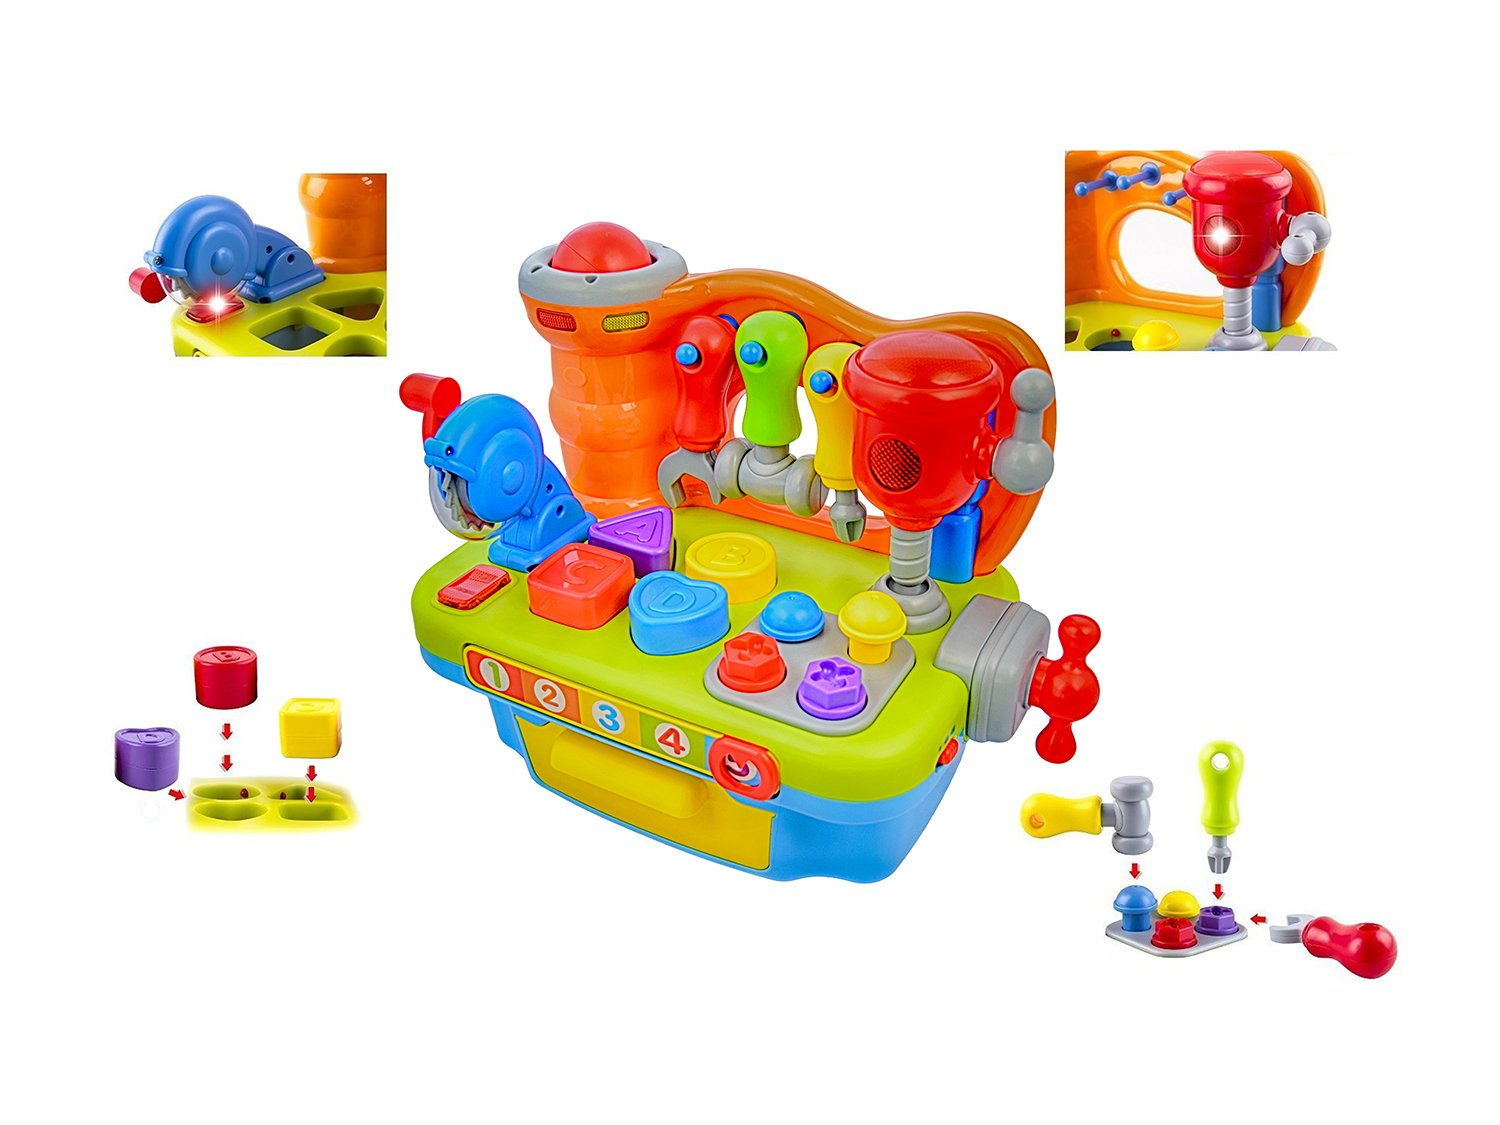 Deluxe Toy Workshop Playset for Kids with Interactive Sounds & Lights | Great Educational Learning Toy for Teaching Colors, Shapes, Numbers, and The Alphabet | Great Gift for Toddler Boys & Girls by CoolToys (Image #2)